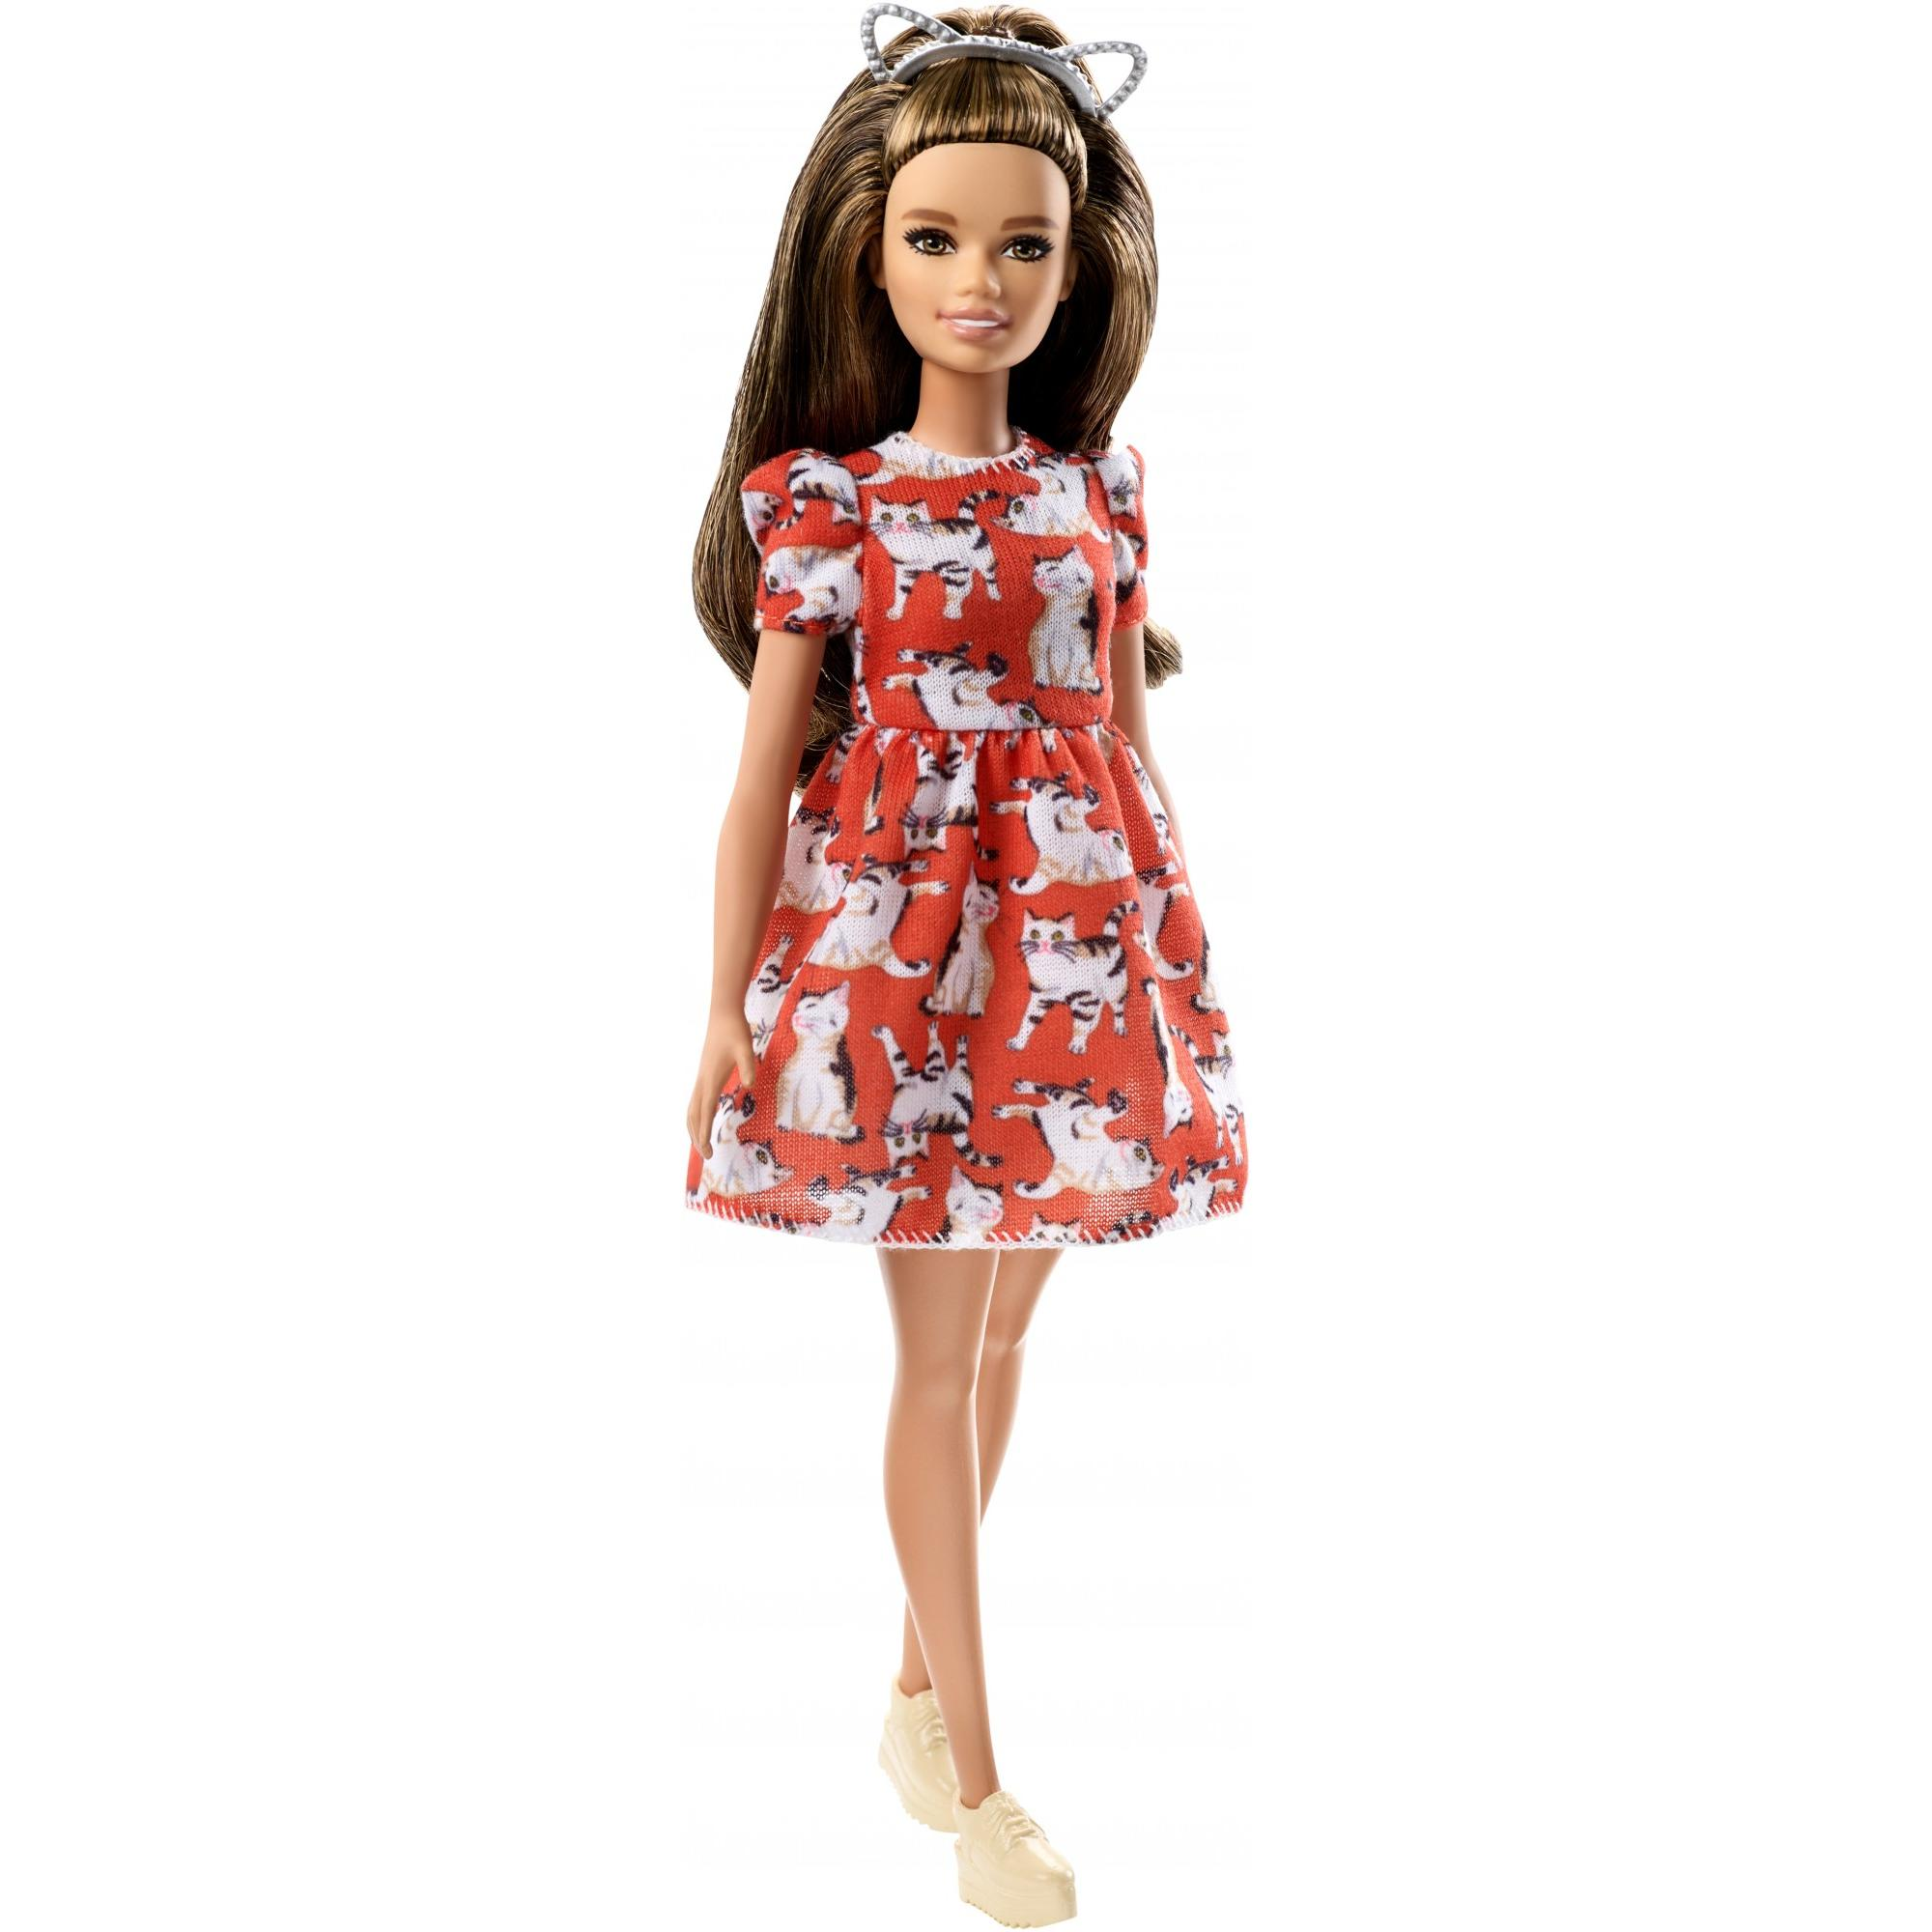 Barbie Fashionistas Doll 97, Kitty Dress by Mattel